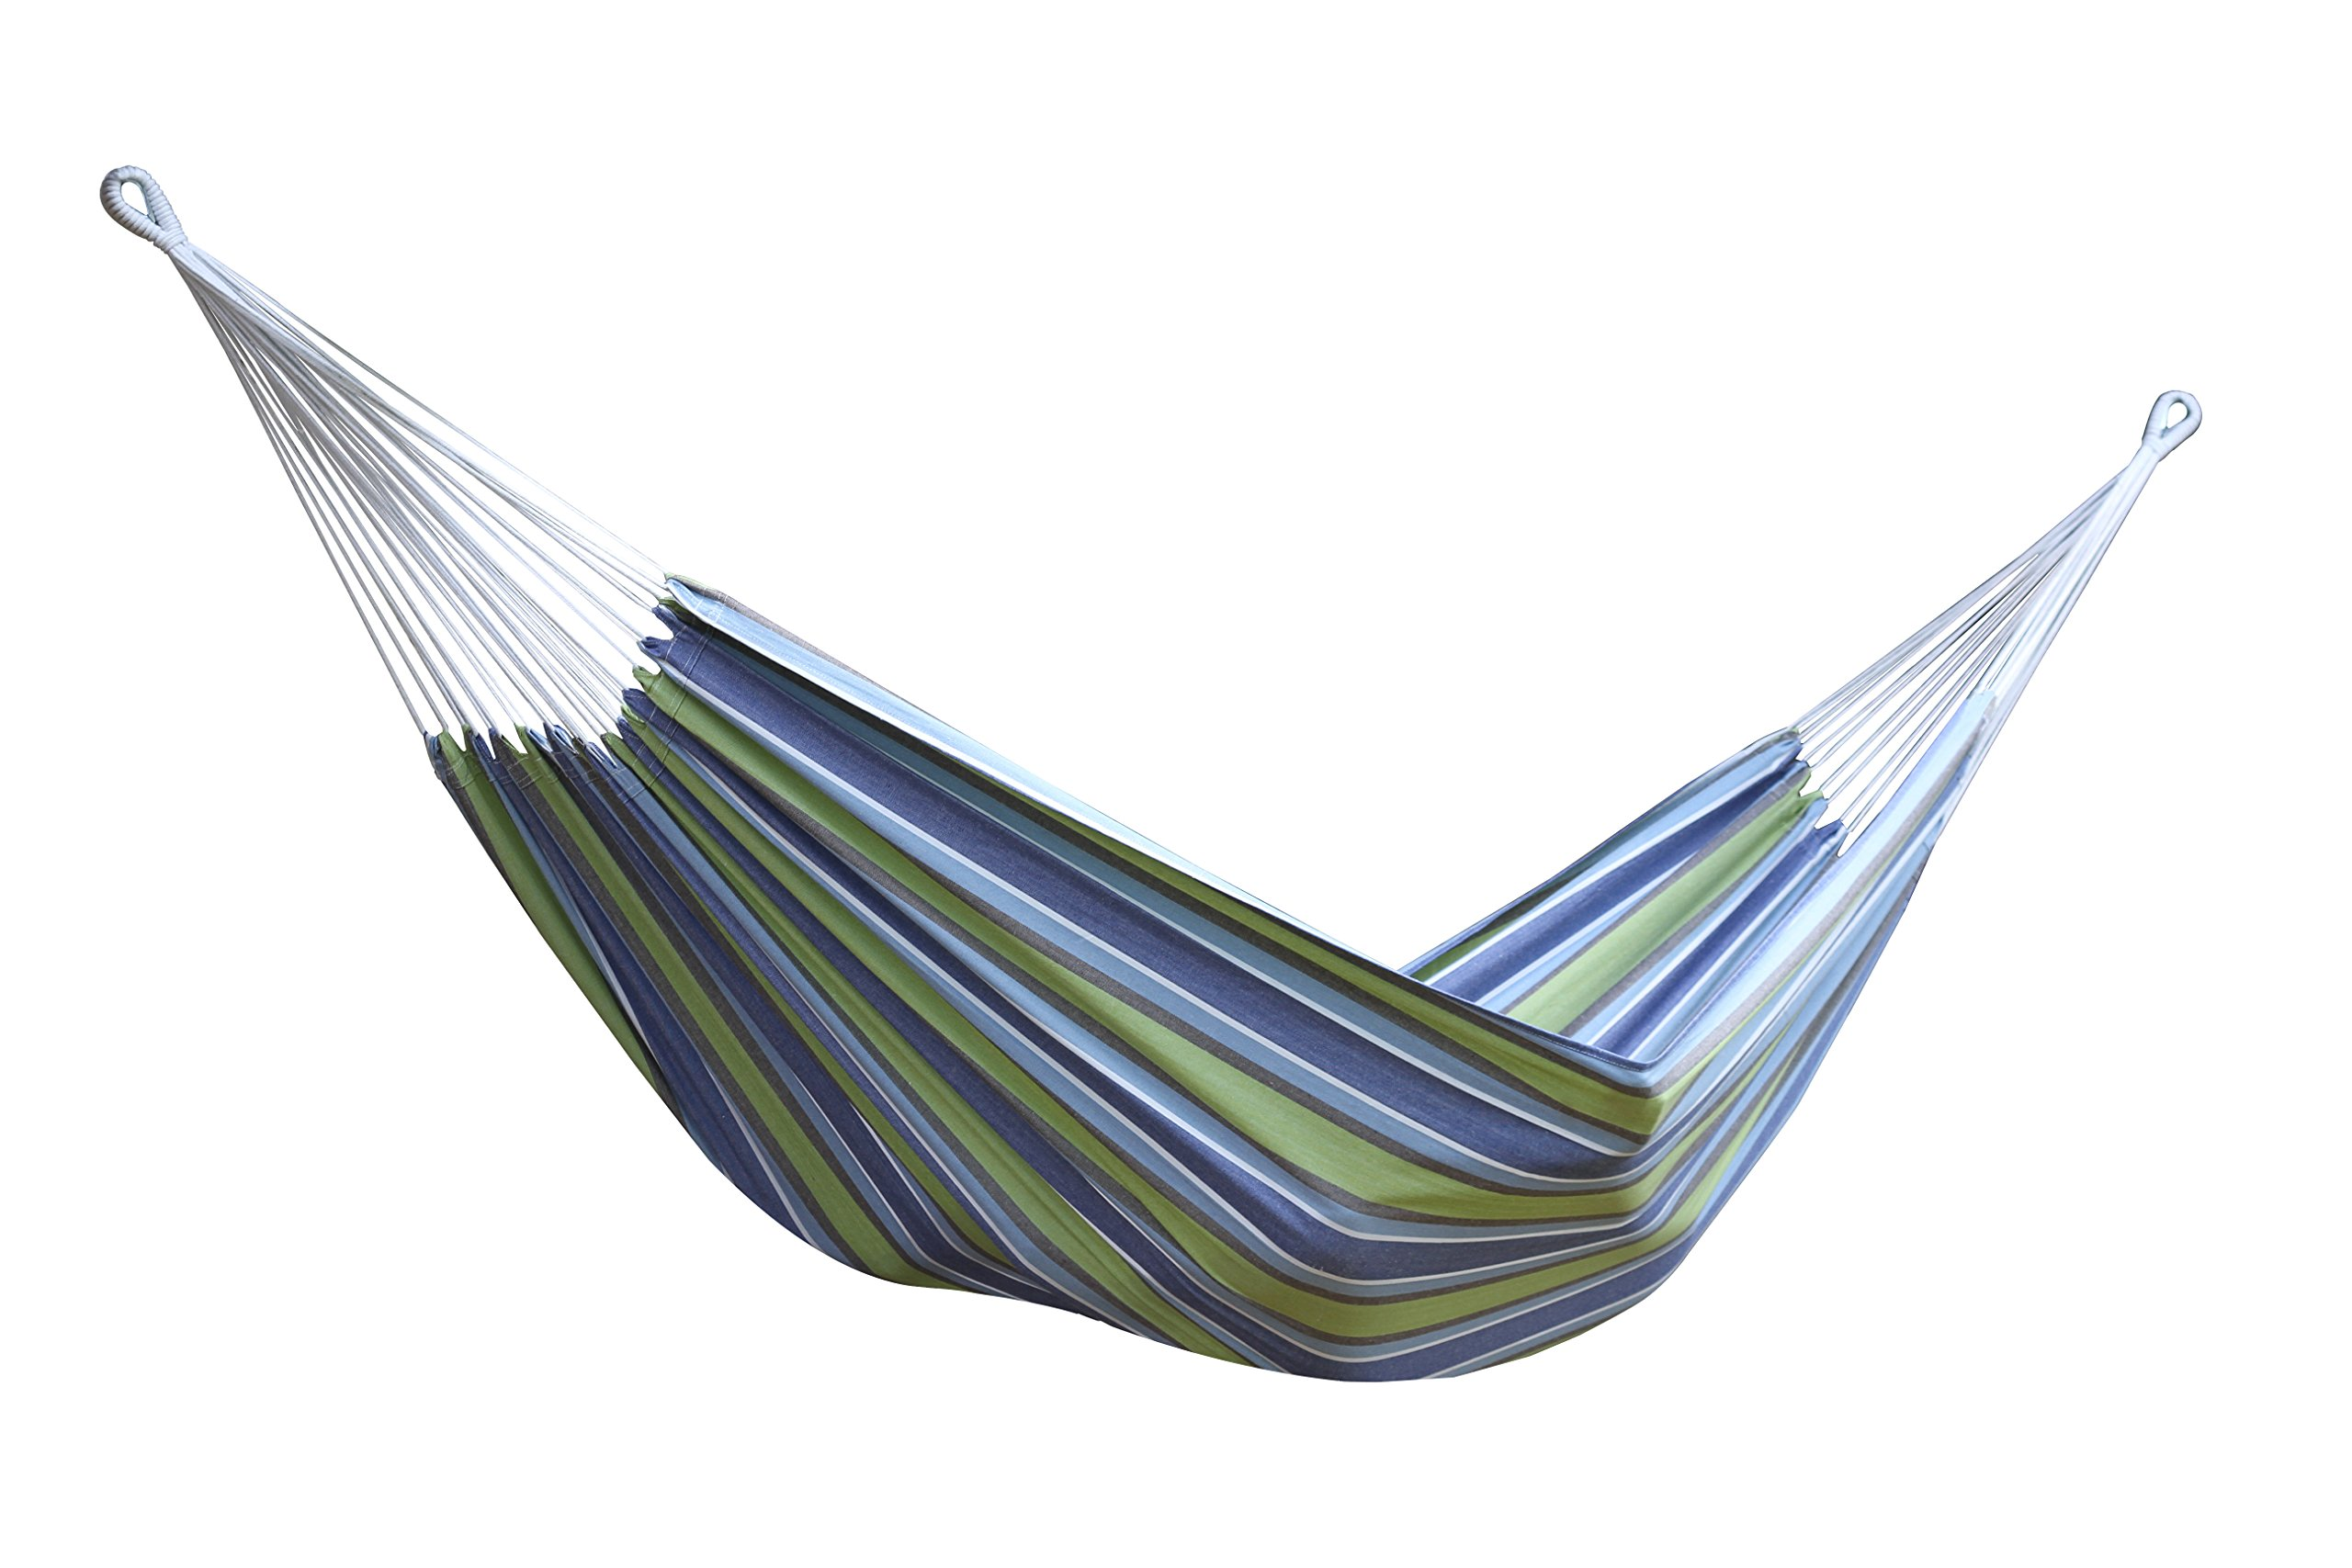 siesta australia colors etsustore vivere cotton chair solid stand com swing brazilian hammock